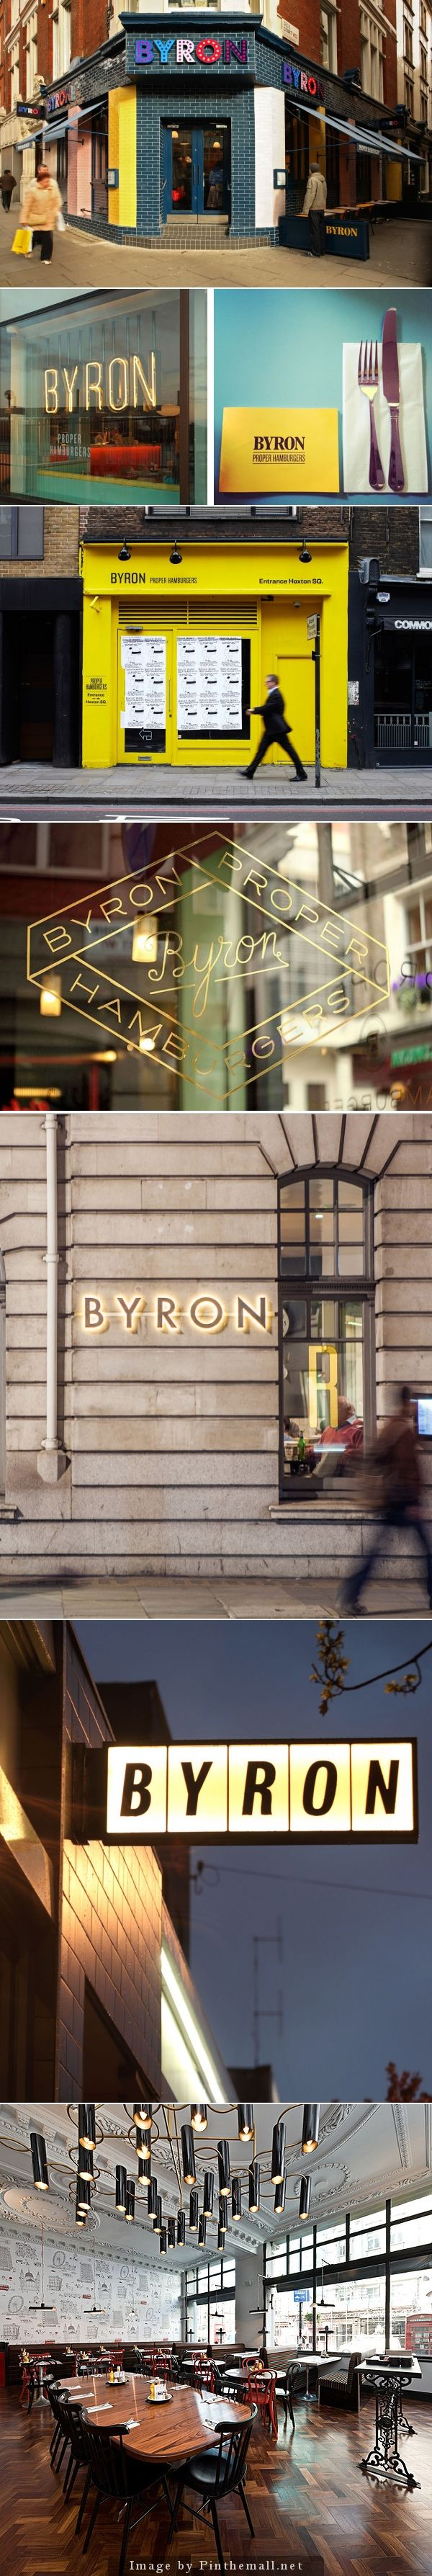 Byron Burgers takes a bold and imaginative approach to their brand by using it different for each location. Design work is done internally, which I think is a wise choice. | Via: A Charming Hello